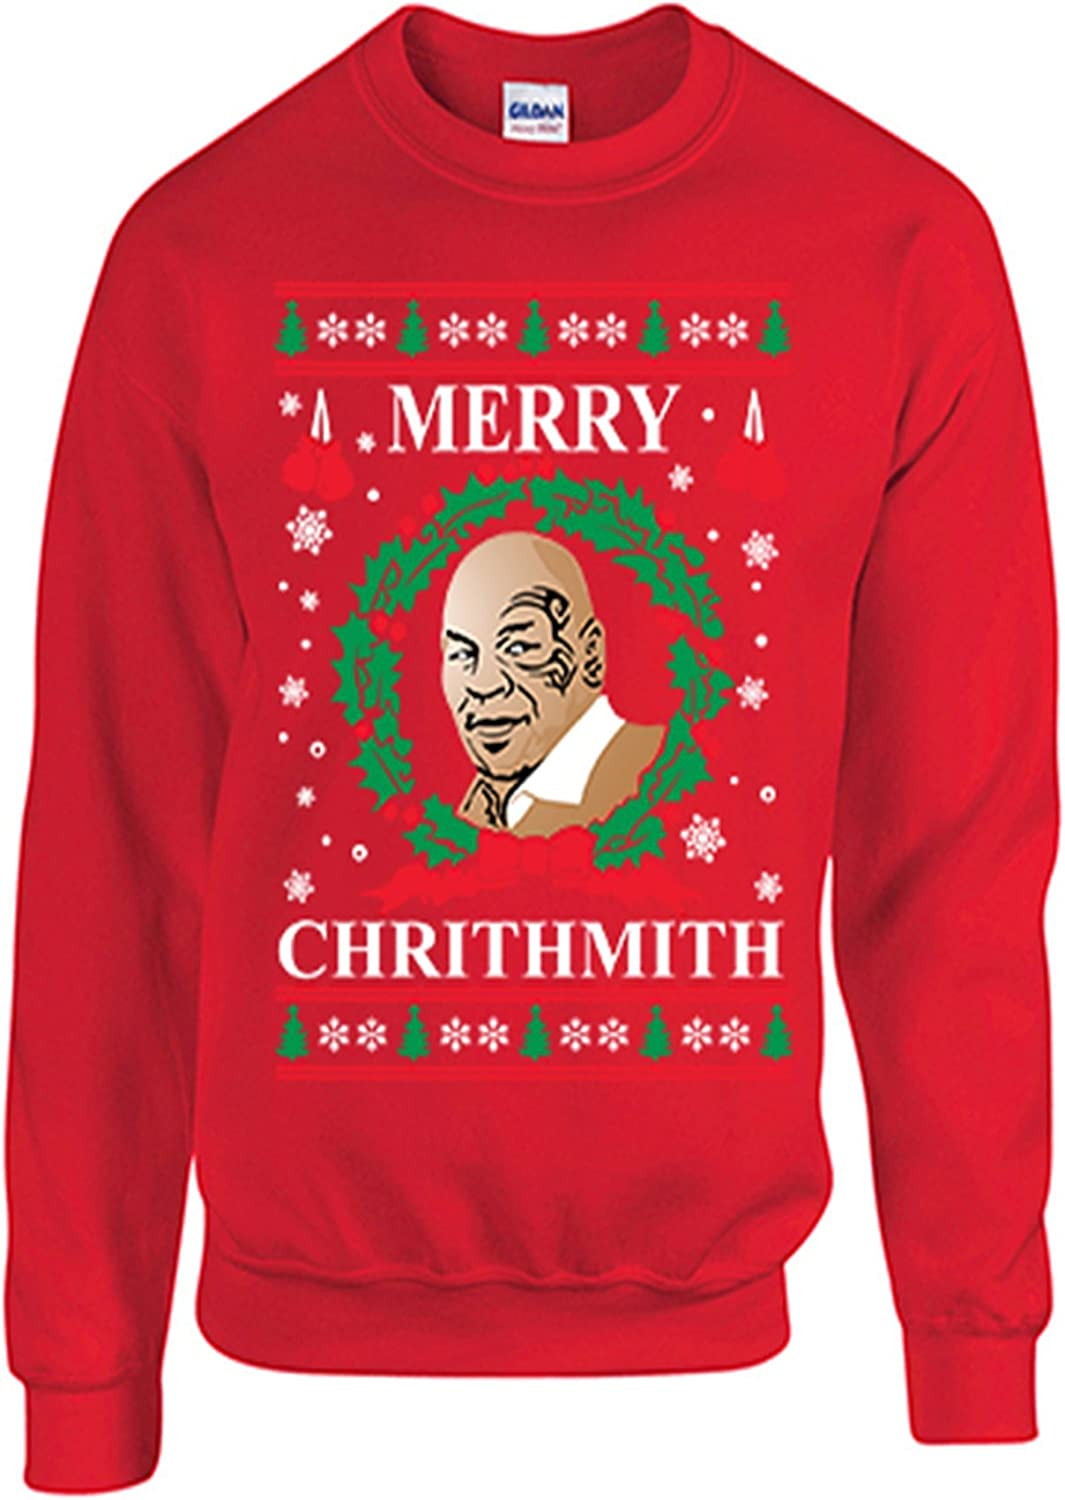 Merry Chrithmith Ugly Christmas Men/'s T-shirt 2017 Xmas Party Funny Tee